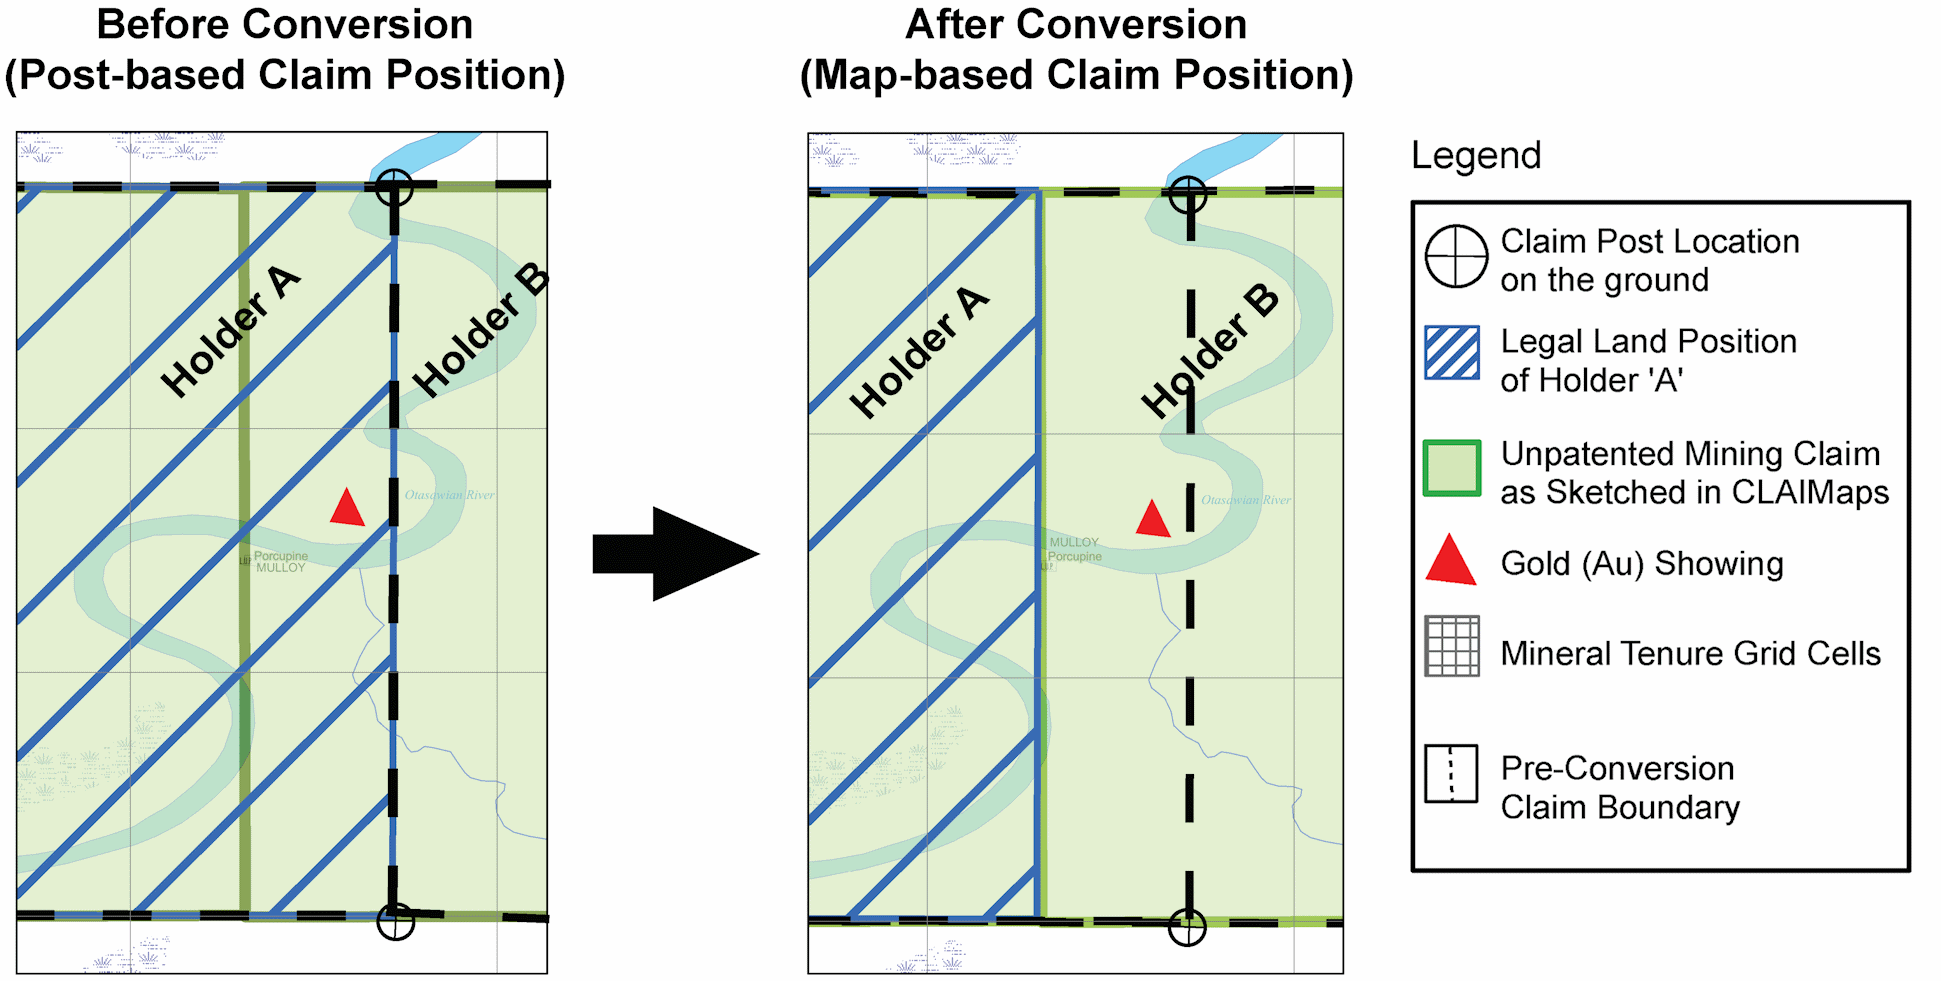 An image illustrating potential boundary shifts after conversion